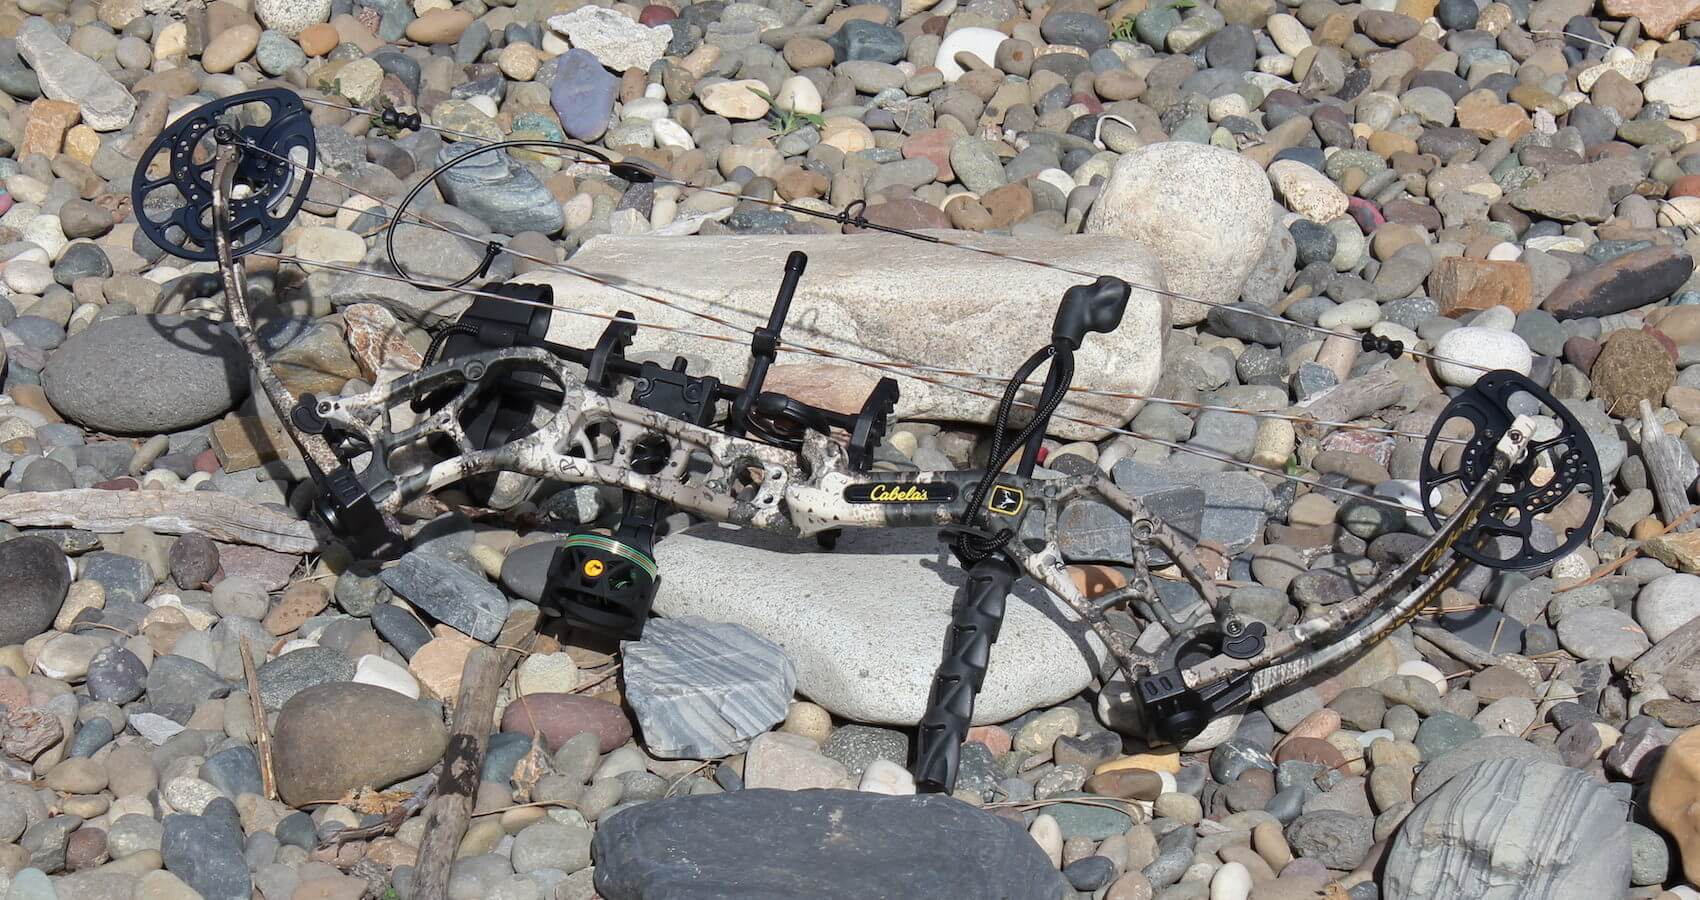 This photo shows the Cabela's Insurgent HC RTH Compound Bow.